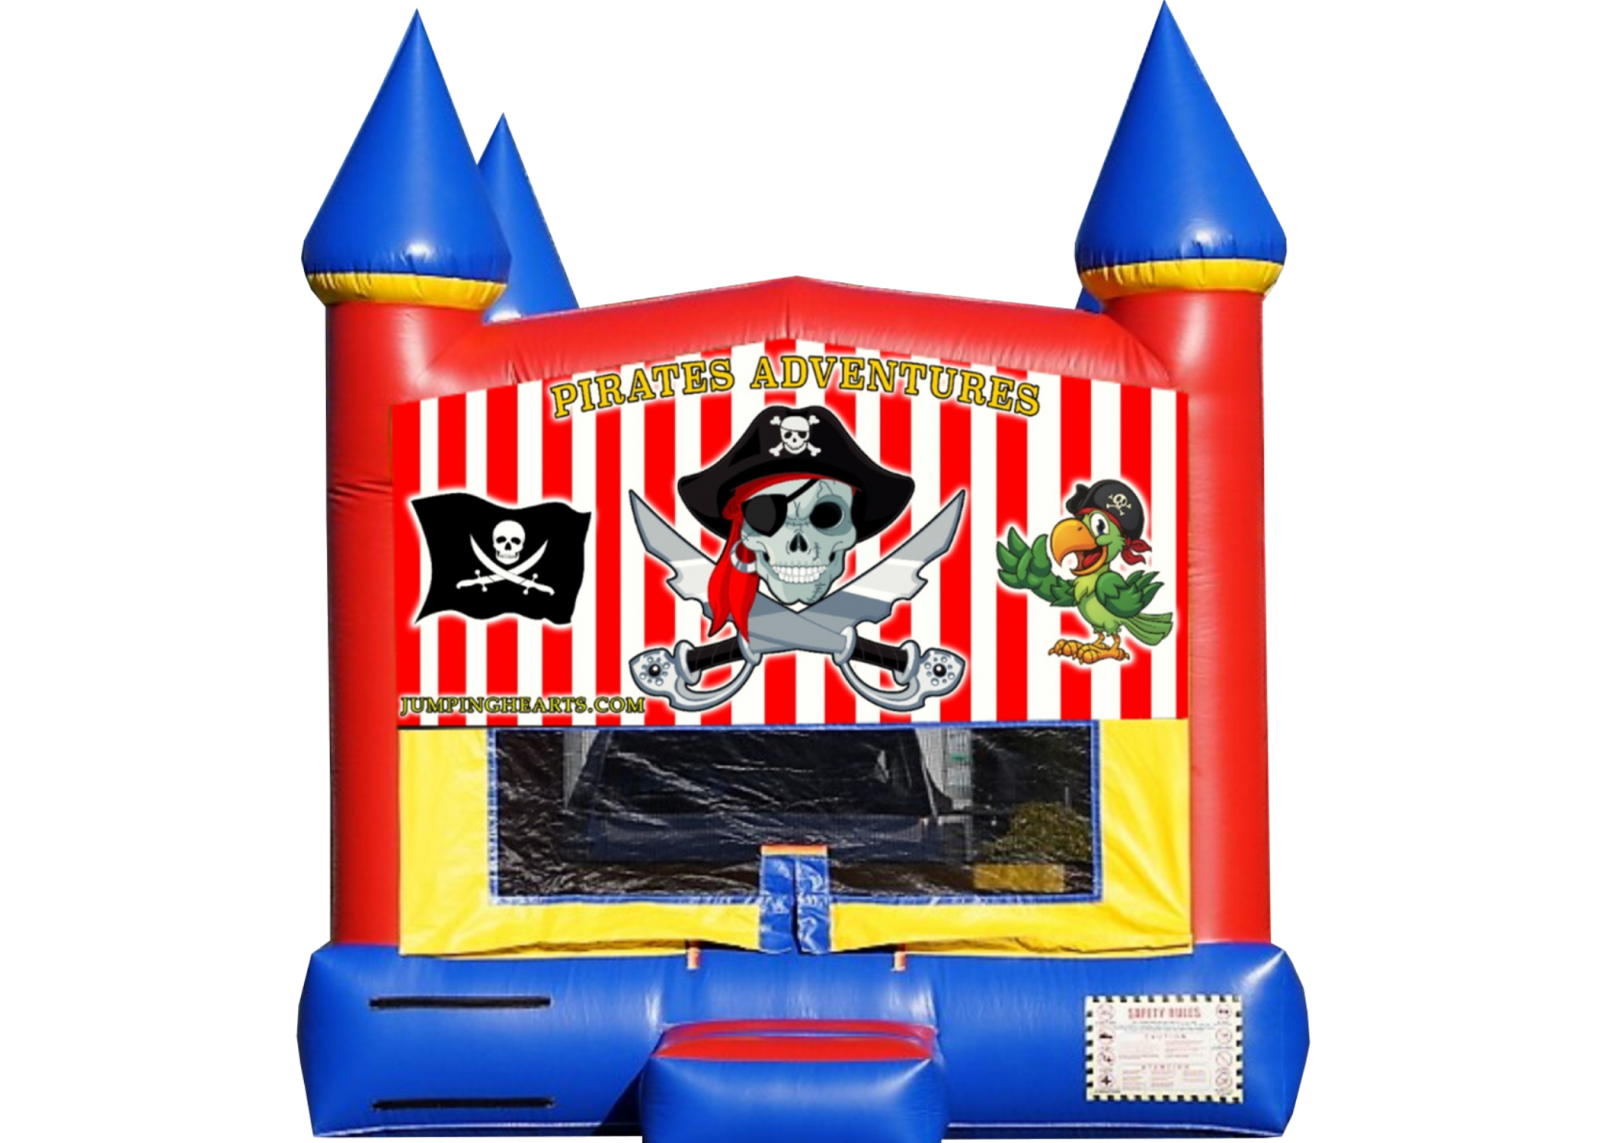 Pirate bounce house rentals Nashville, Jumping Hearts Party Rentals 615 854 1020